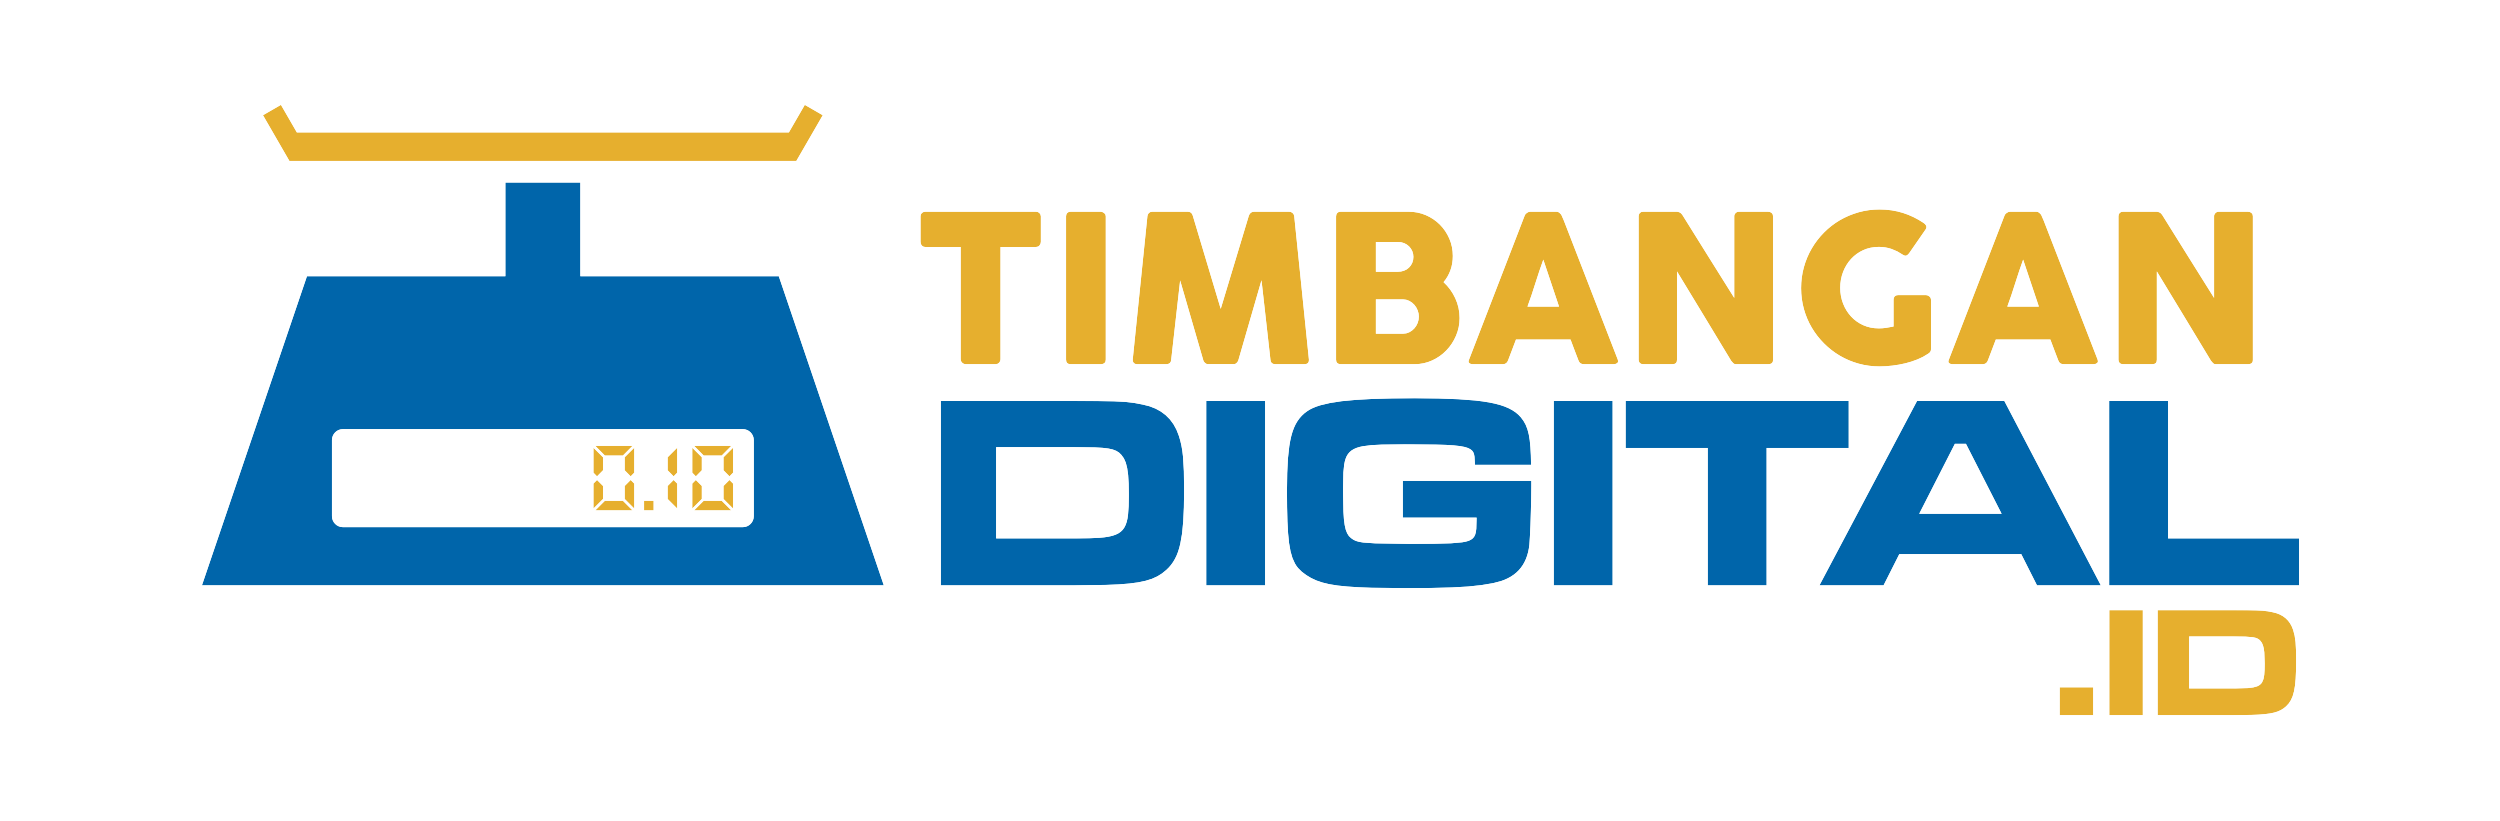 Timbangan Digital Indonesia